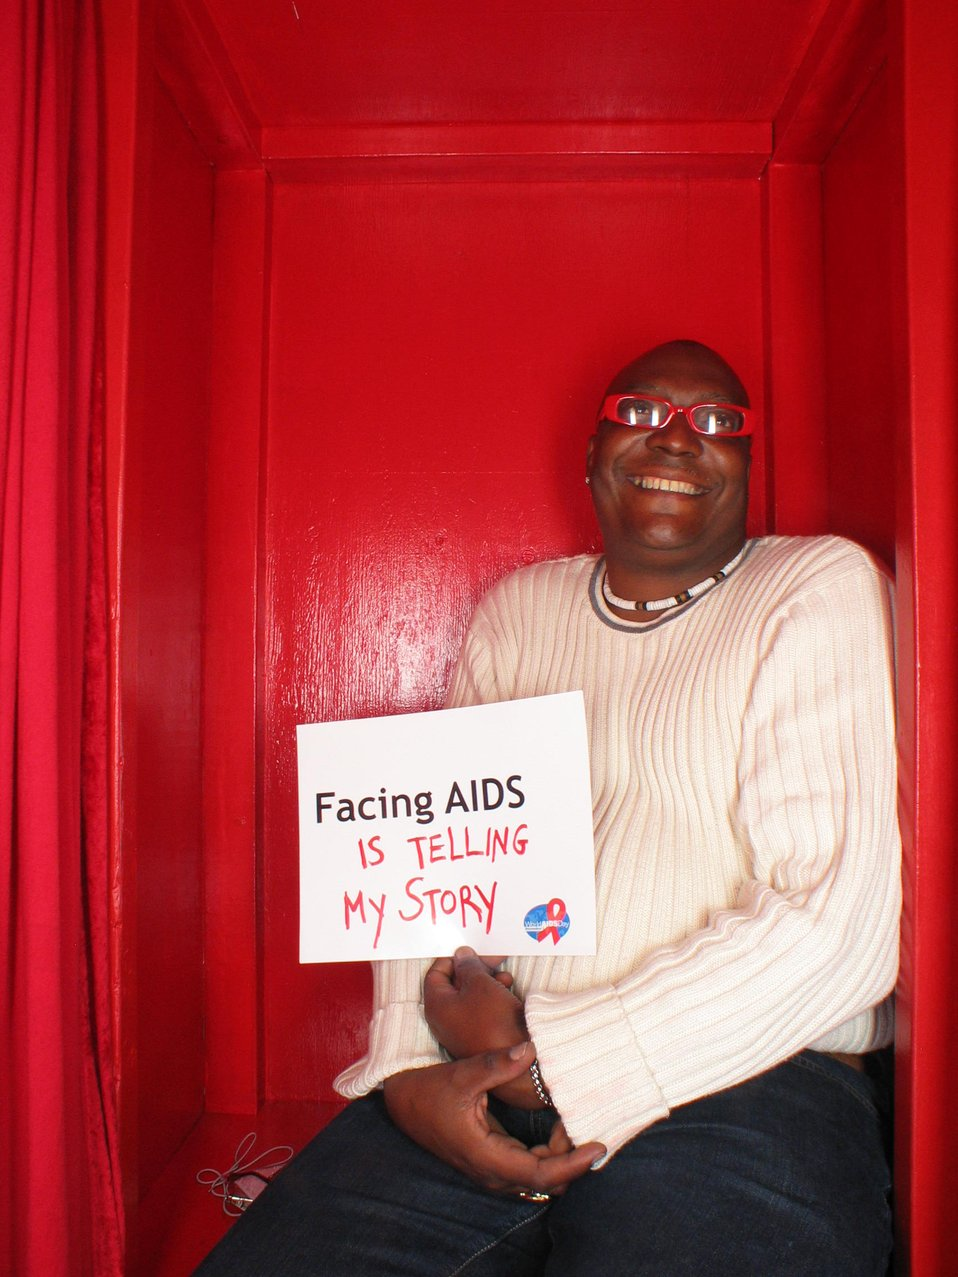 Facing AIDS is telling my story